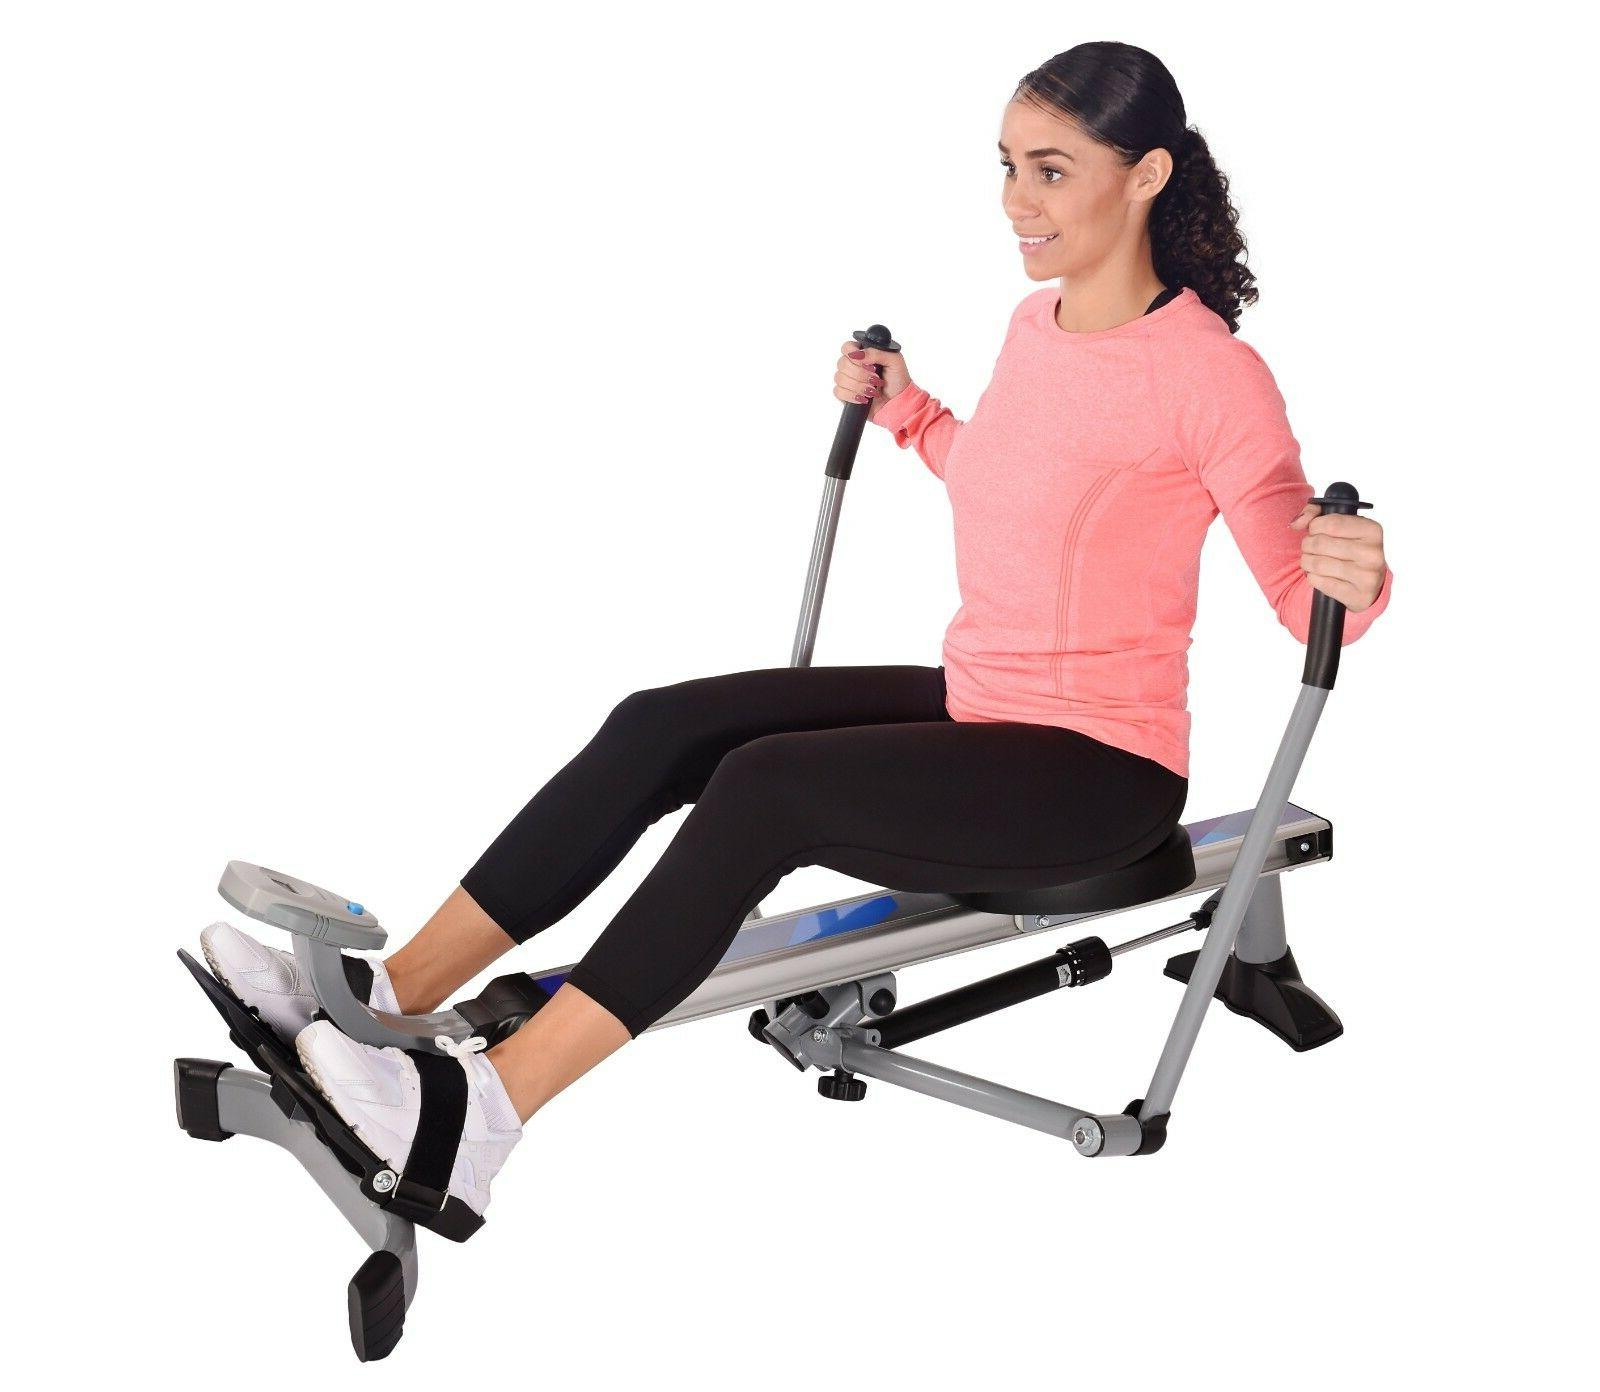 full motion rowing machine a350 550